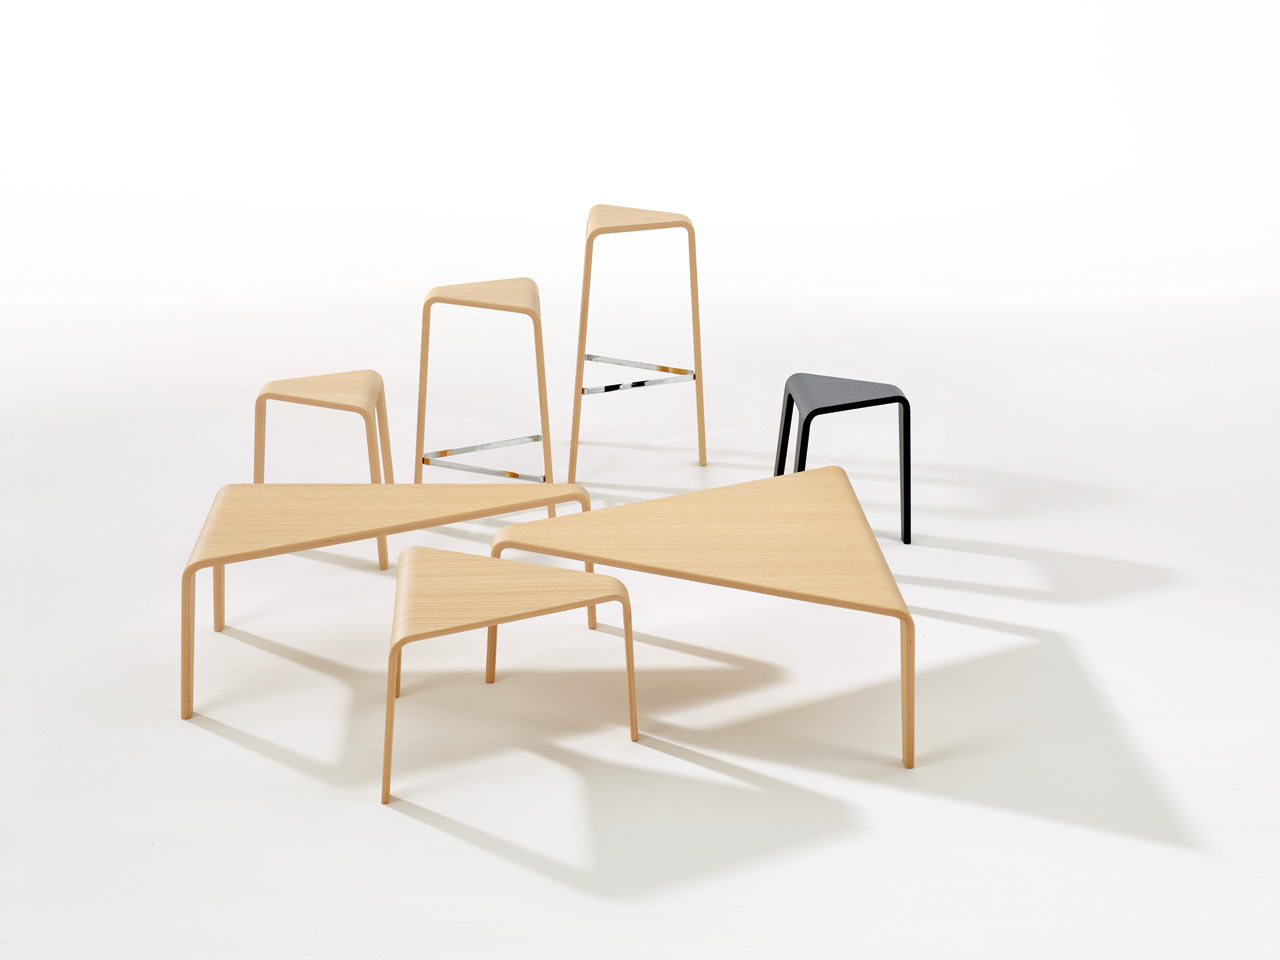 Ply stools and tables by Lievore Altherr Molina